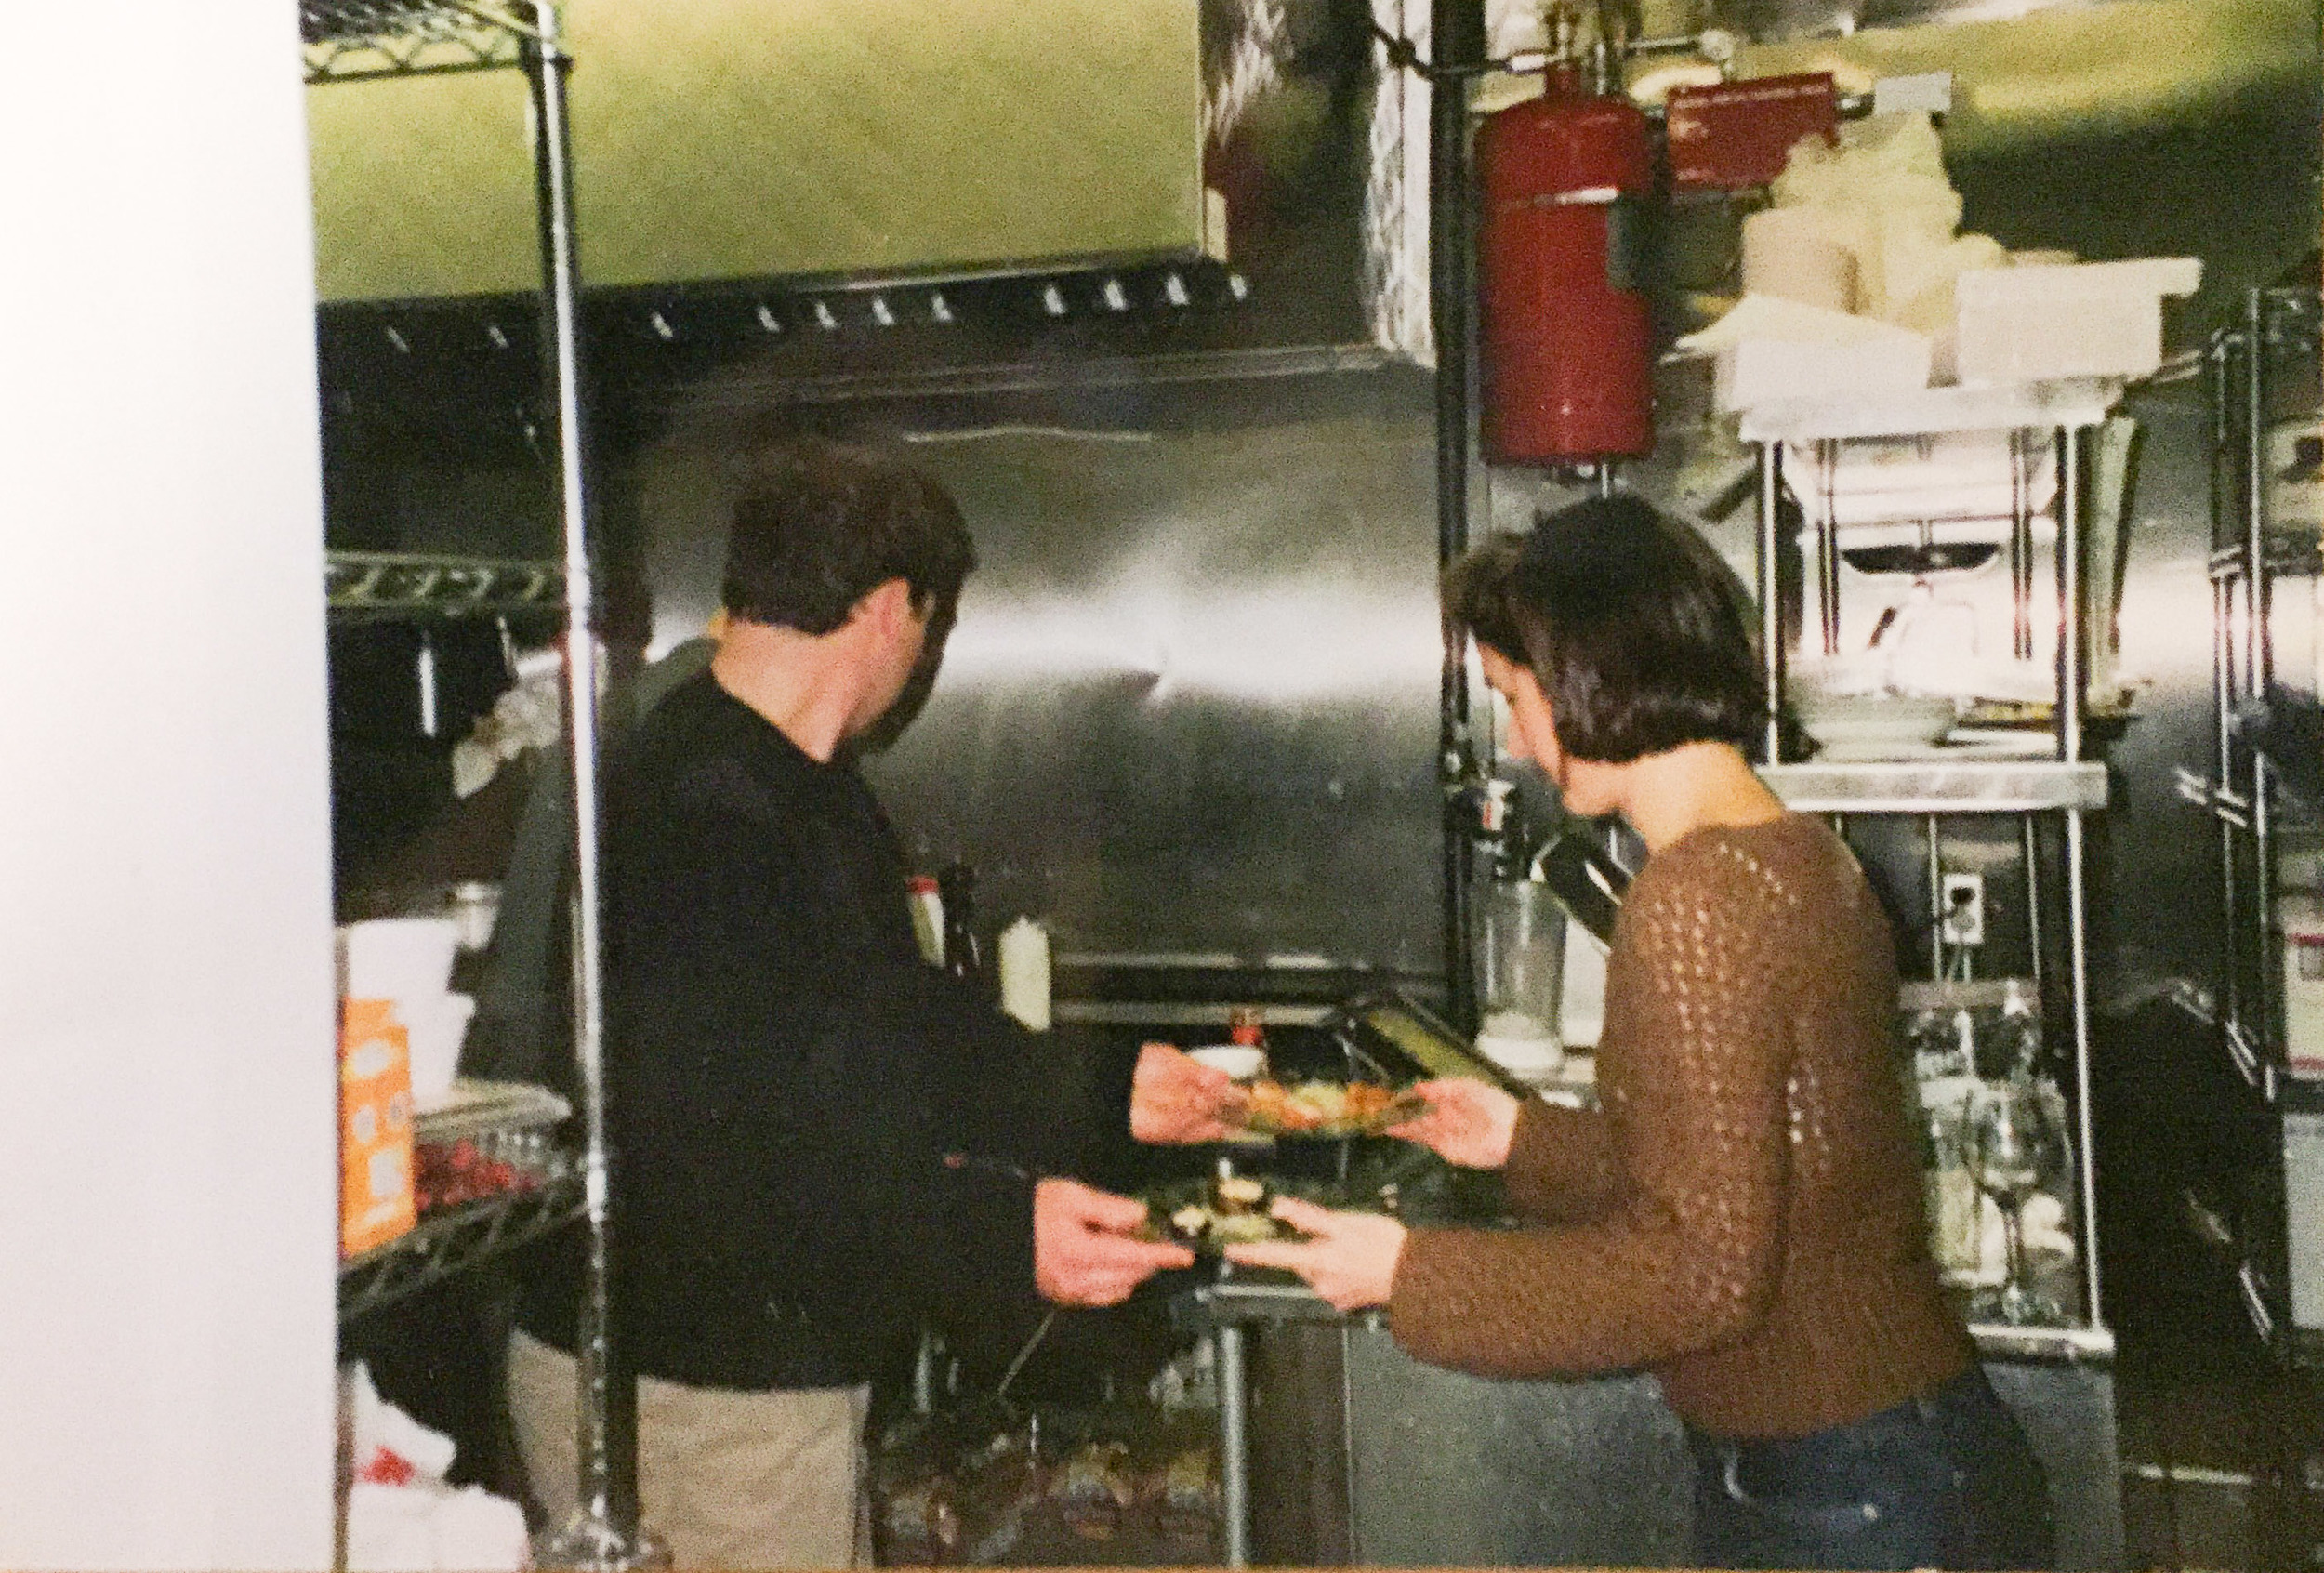 Stephen and Inez working in the kitchen on On the Square's opening night.